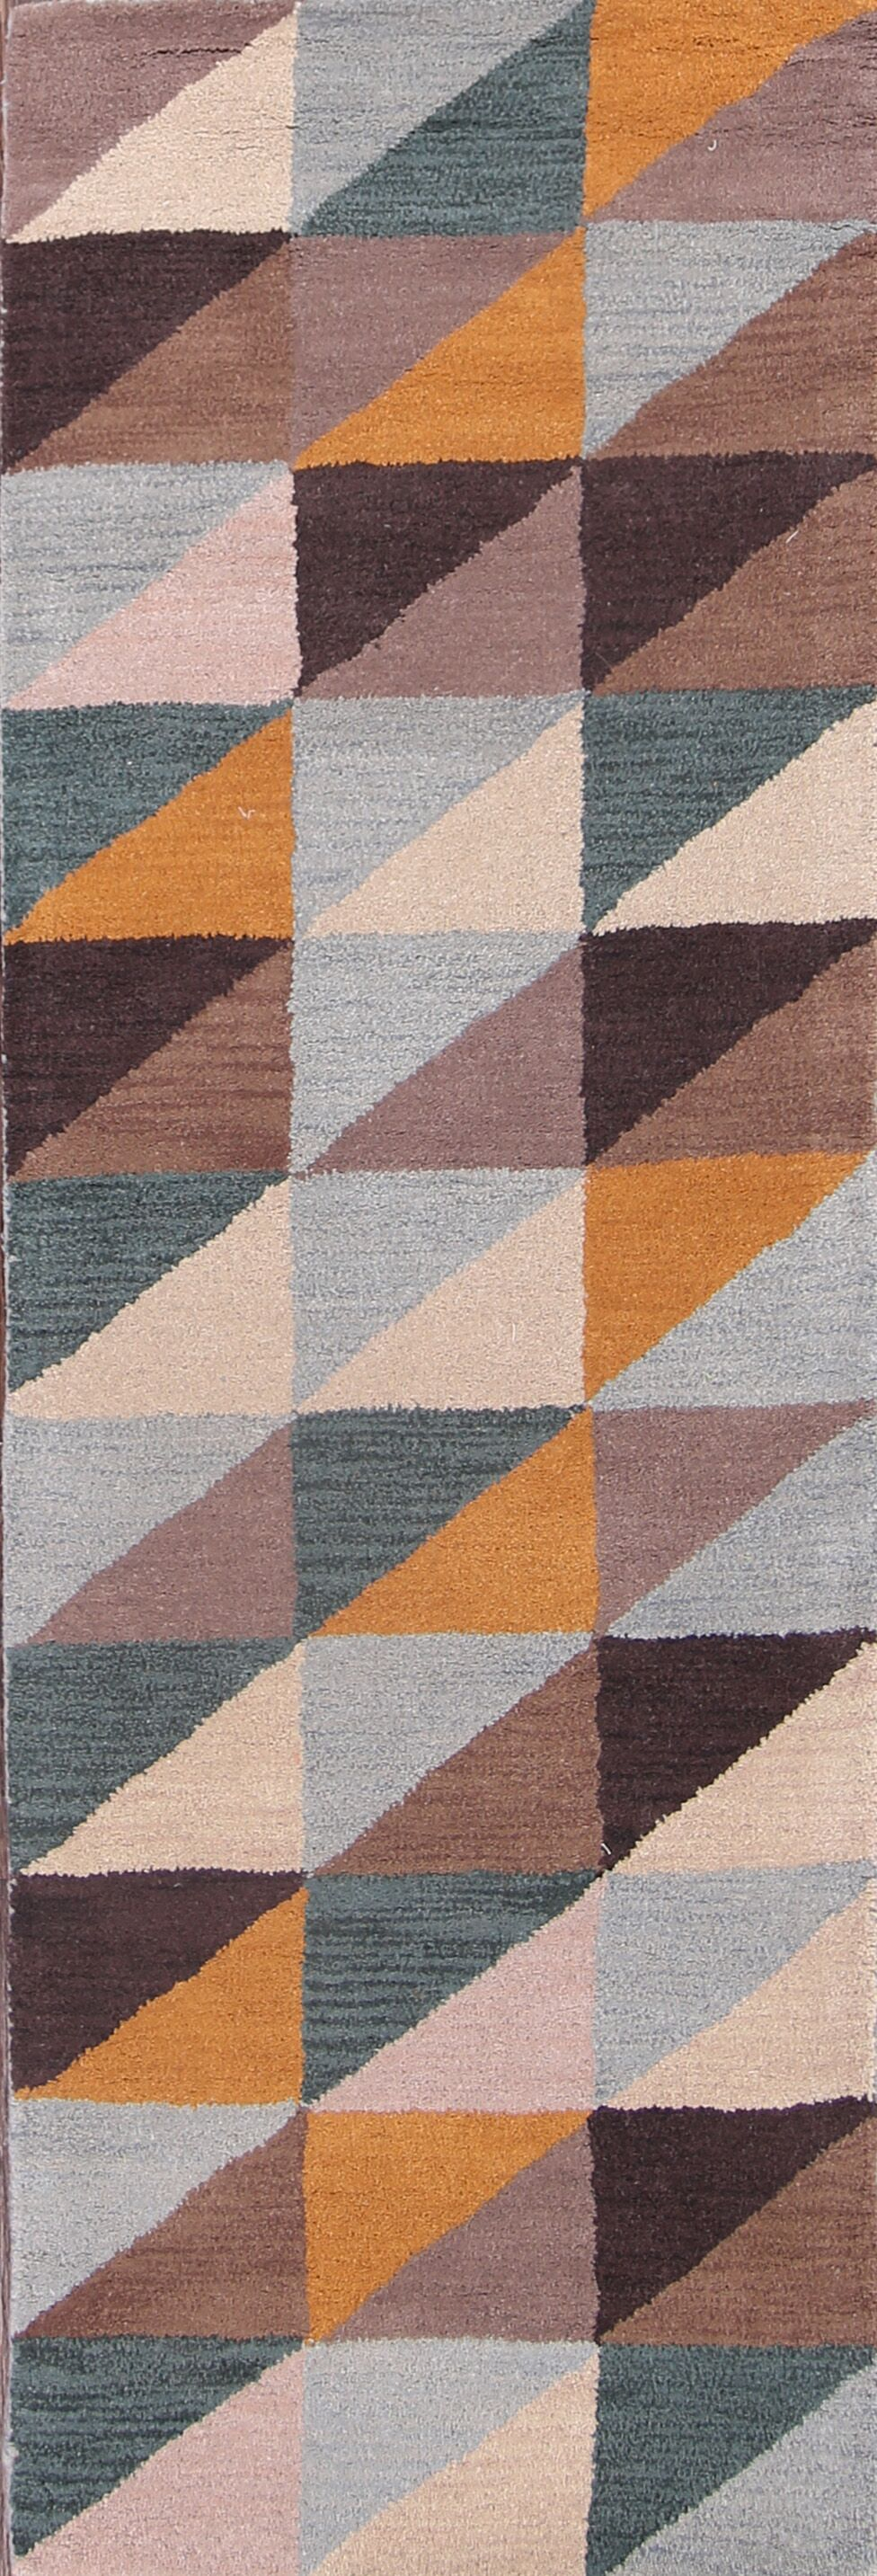 Camila Gabbeh Traditional Oriental Hand-Tufted Wool Brown/Blue/Yellow Area Rug